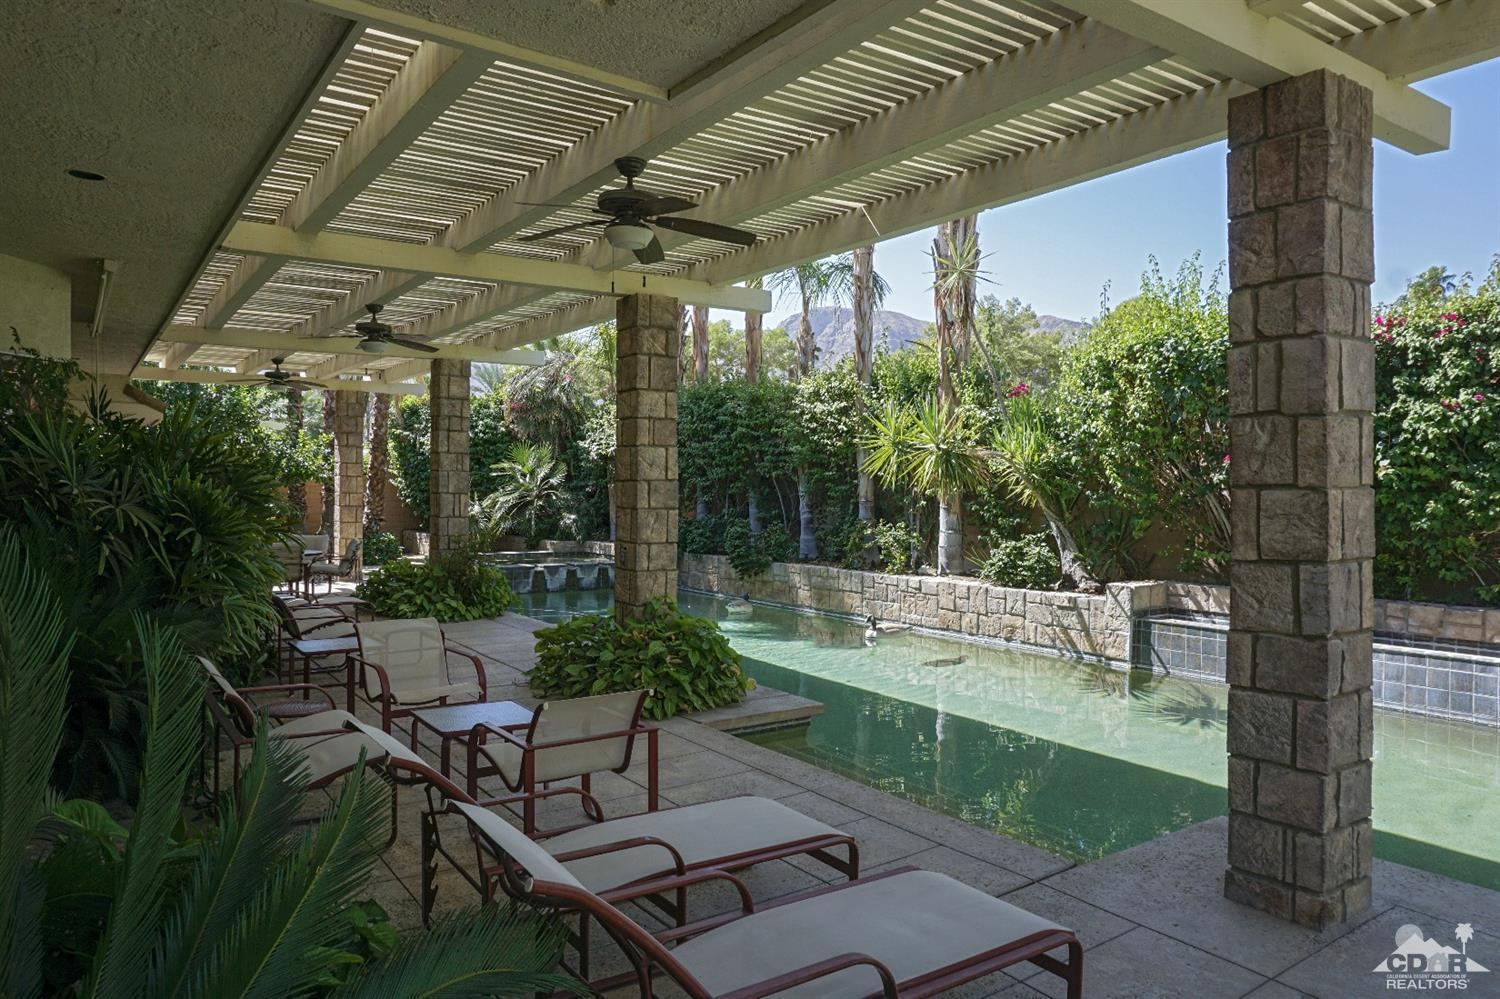 ... Patio Plus Rancho Mirage By 54 Mayfair Drive Drive Rancho Mirage Ca  92270 Mls 216027206 ...